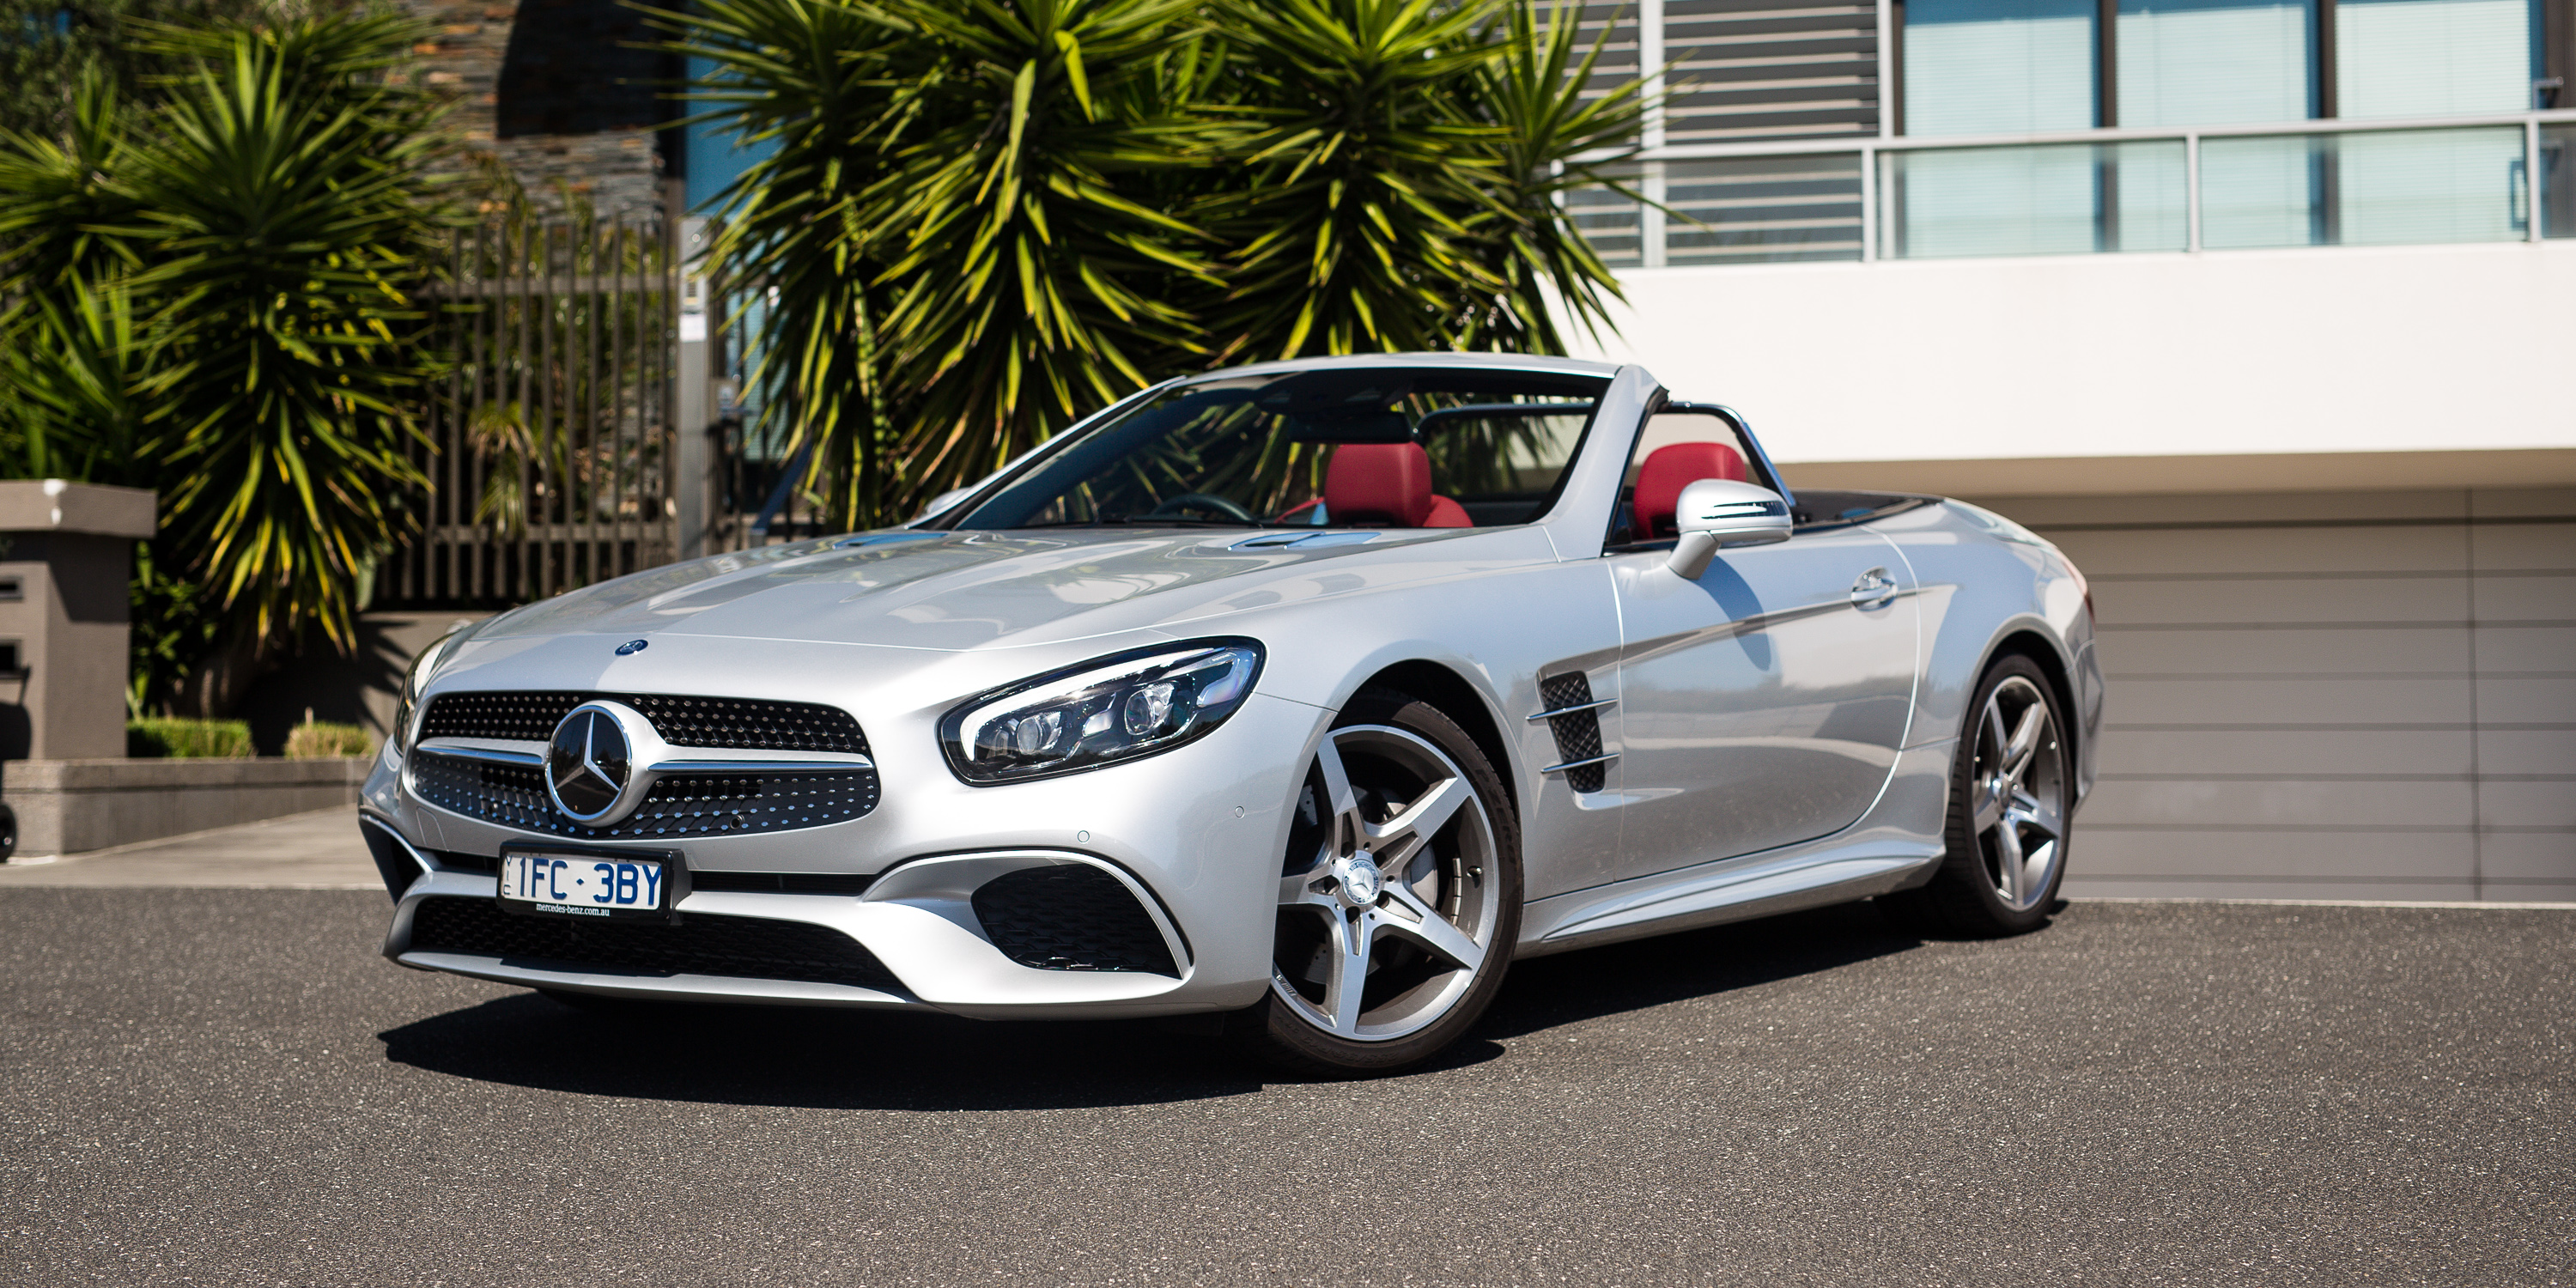 2017 mercedes benz sl400 review photos caradvice for Autos mercedes benz